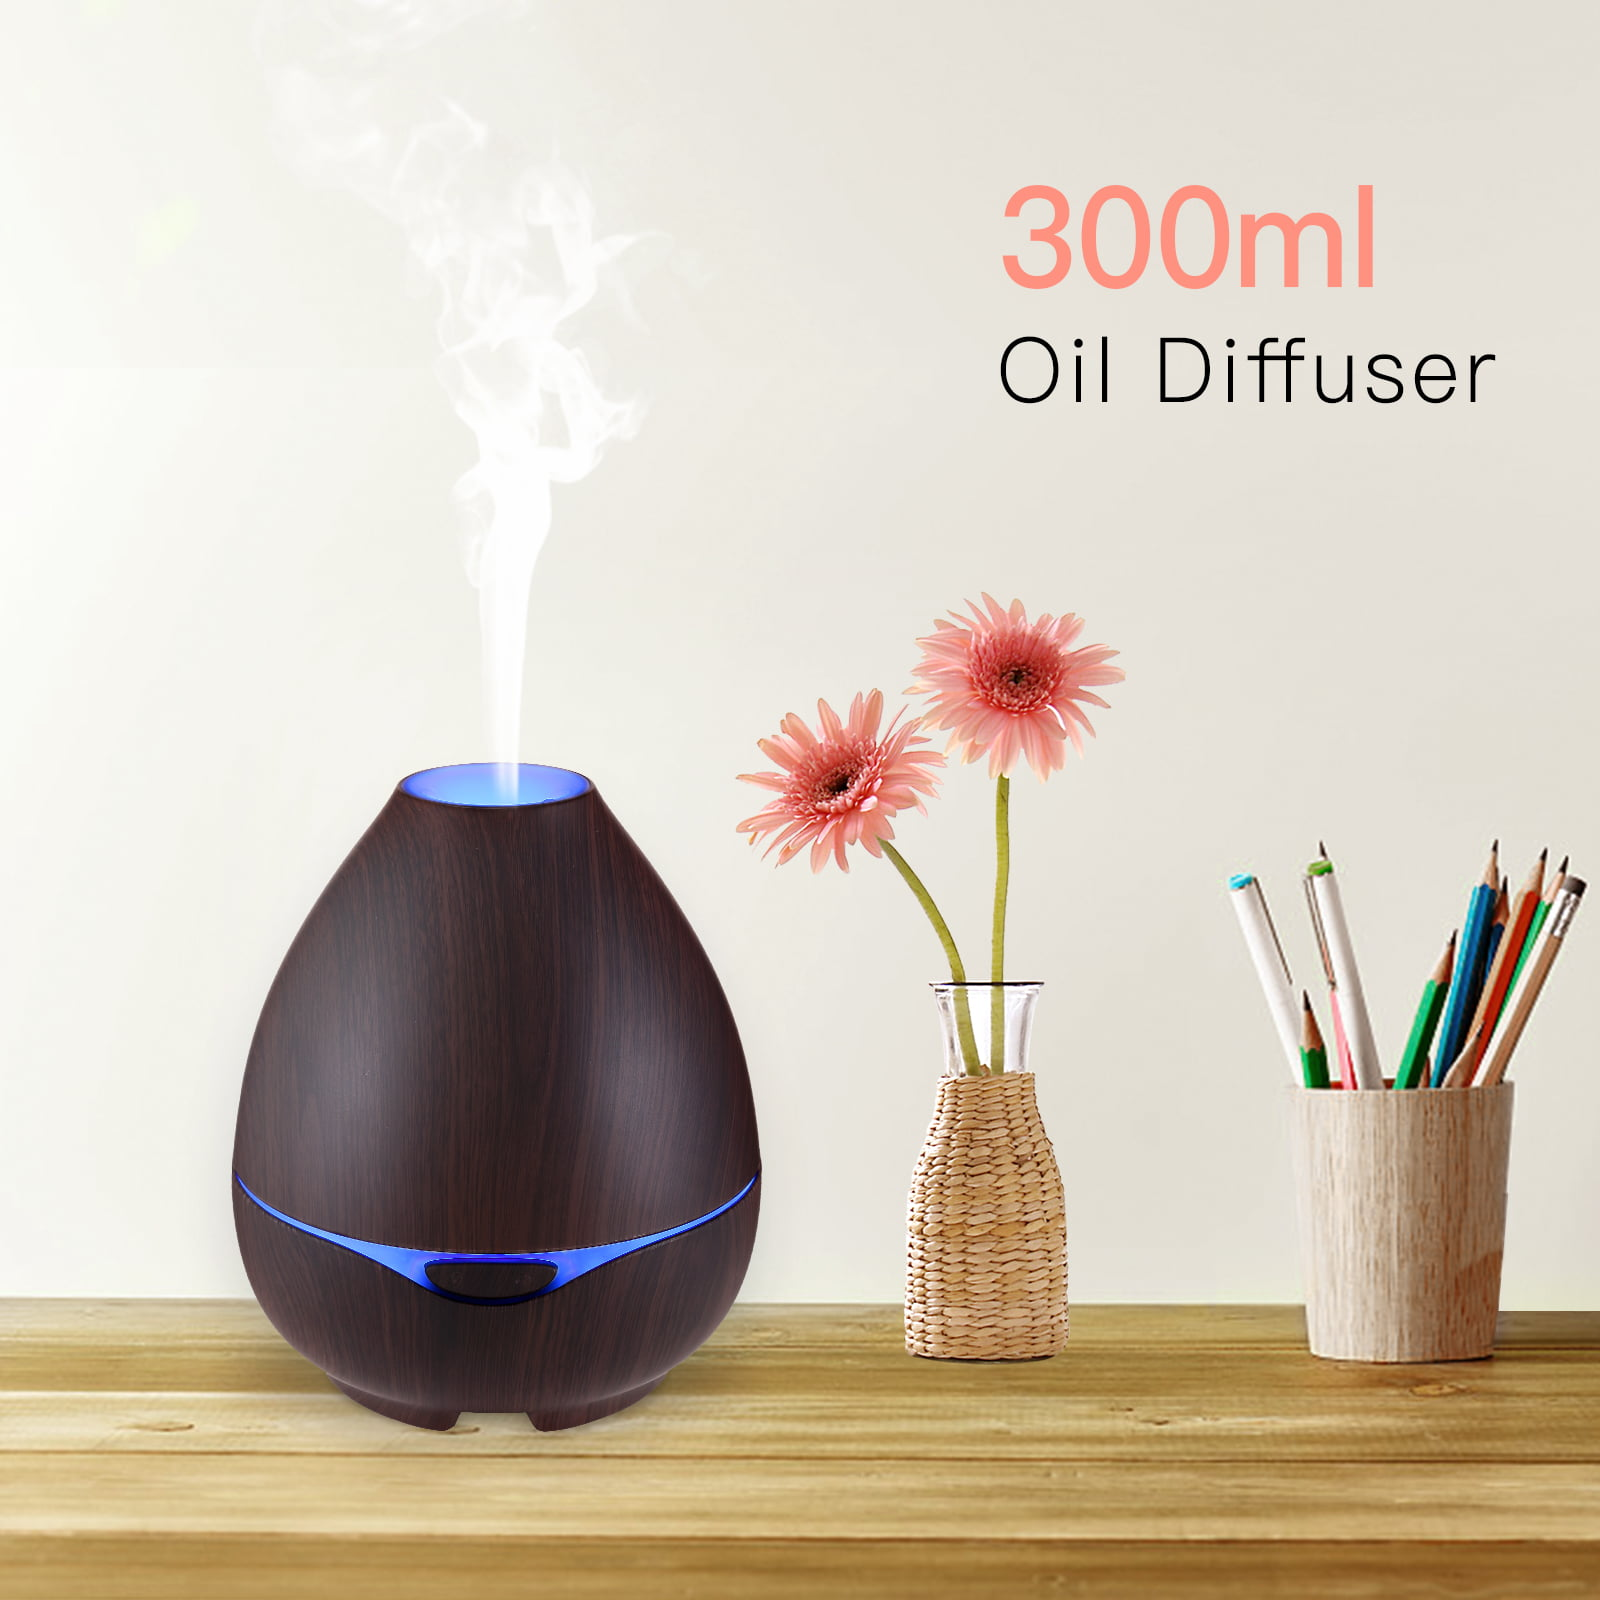 20.5oz Aroma Essential Oil Diffuser Ultrasonic Aromatherapy Humidifier w Light by Uenjoy